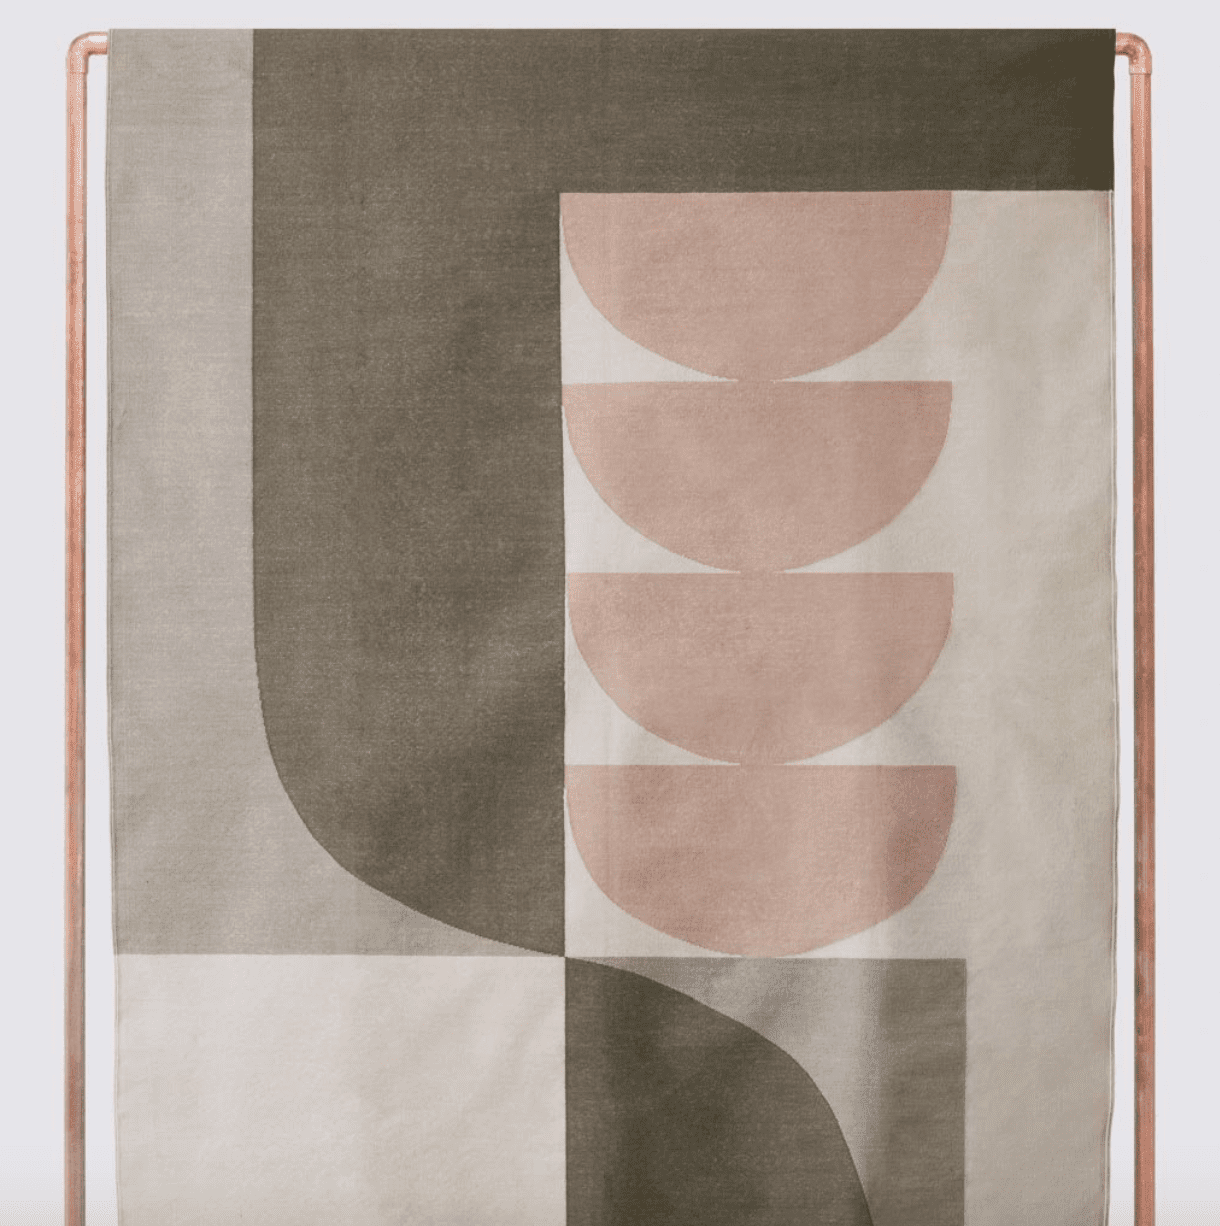 patterned rug in shades of olive and blush pinkl